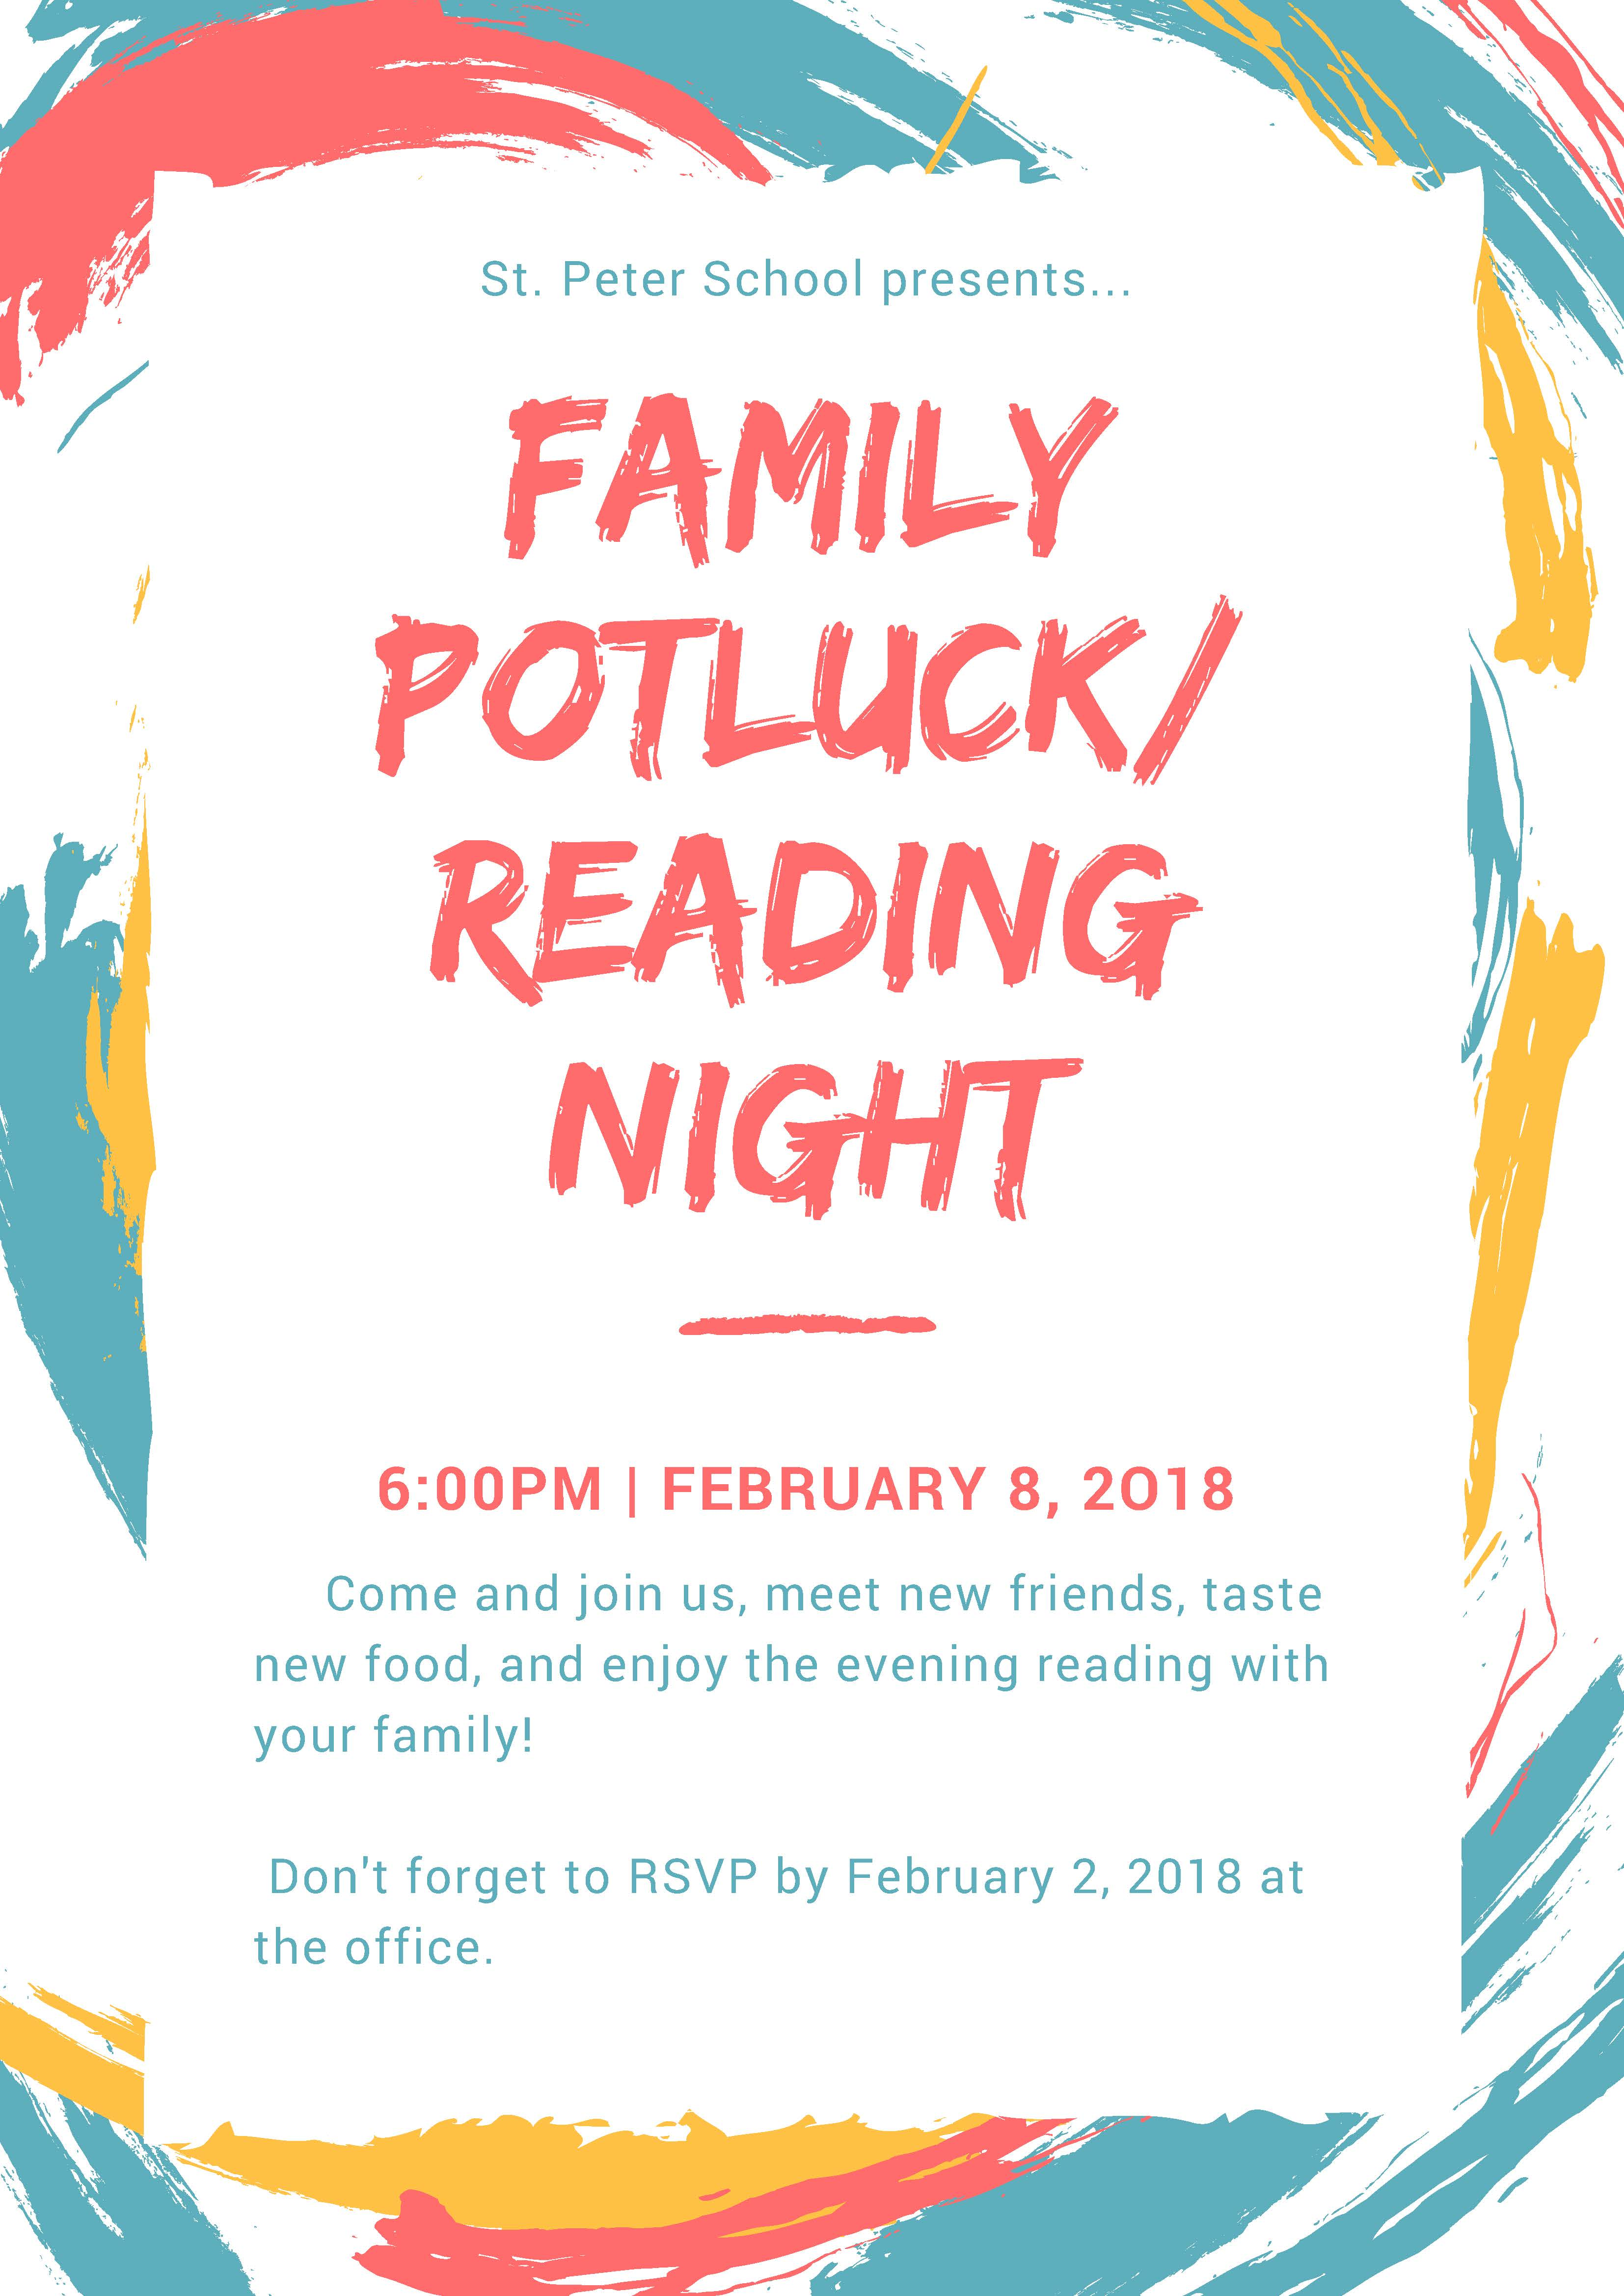 St. Peter School Family Potluck and Reading Night